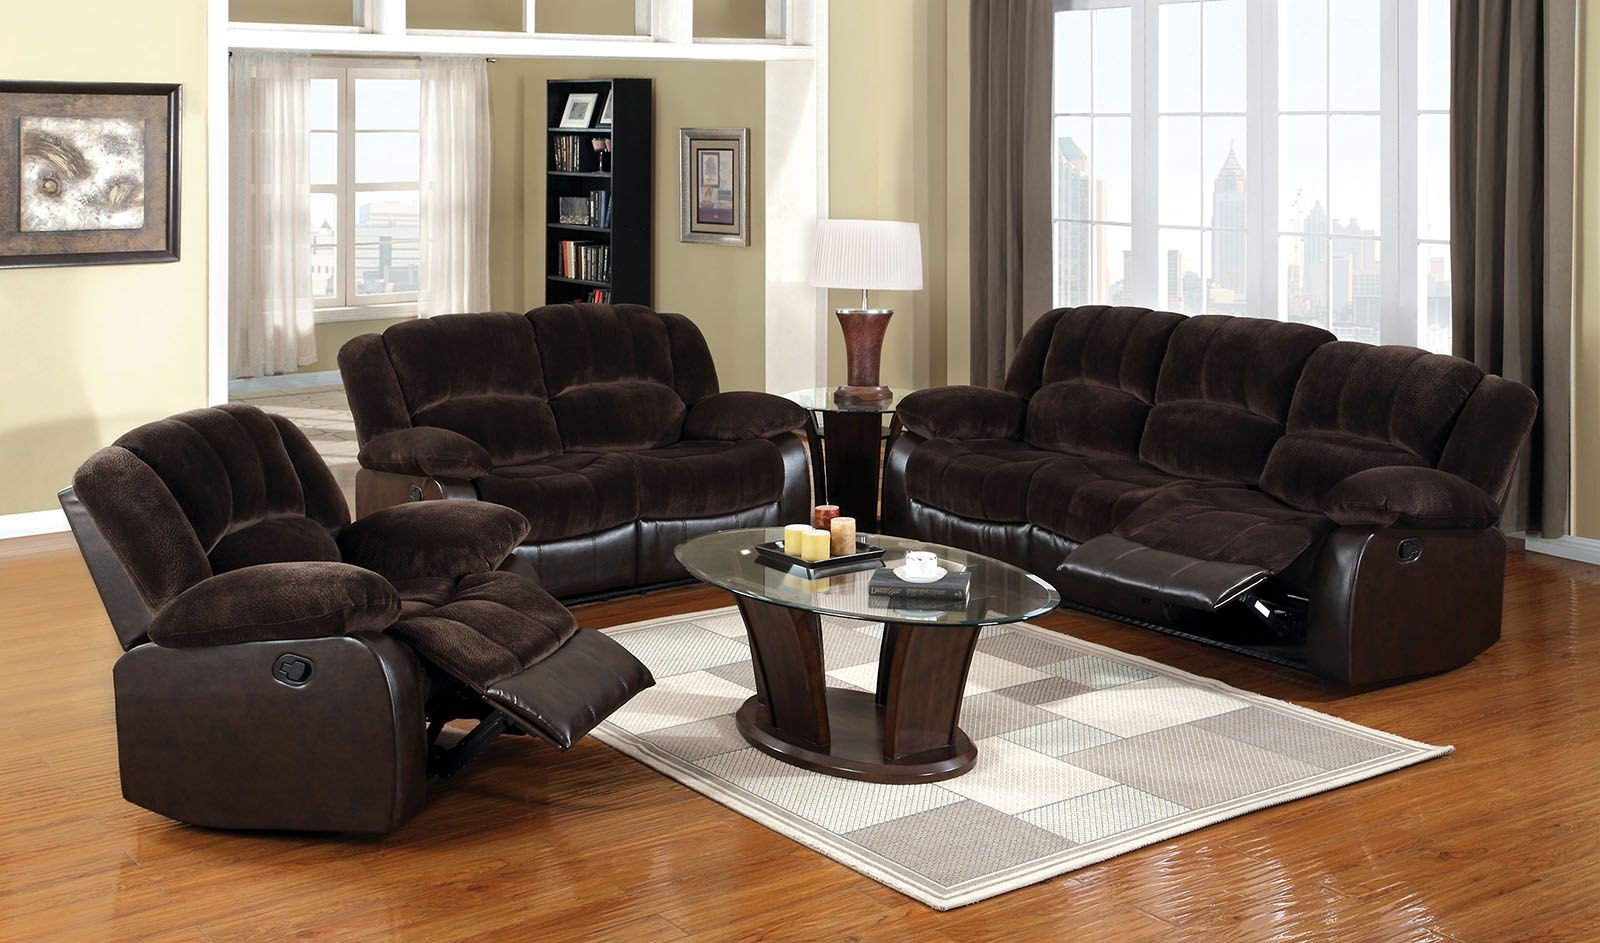 winslow rustic brown reclining living room set from furniture of america coleman furniture. Black Bedroom Furniture Sets. Home Design Ideas